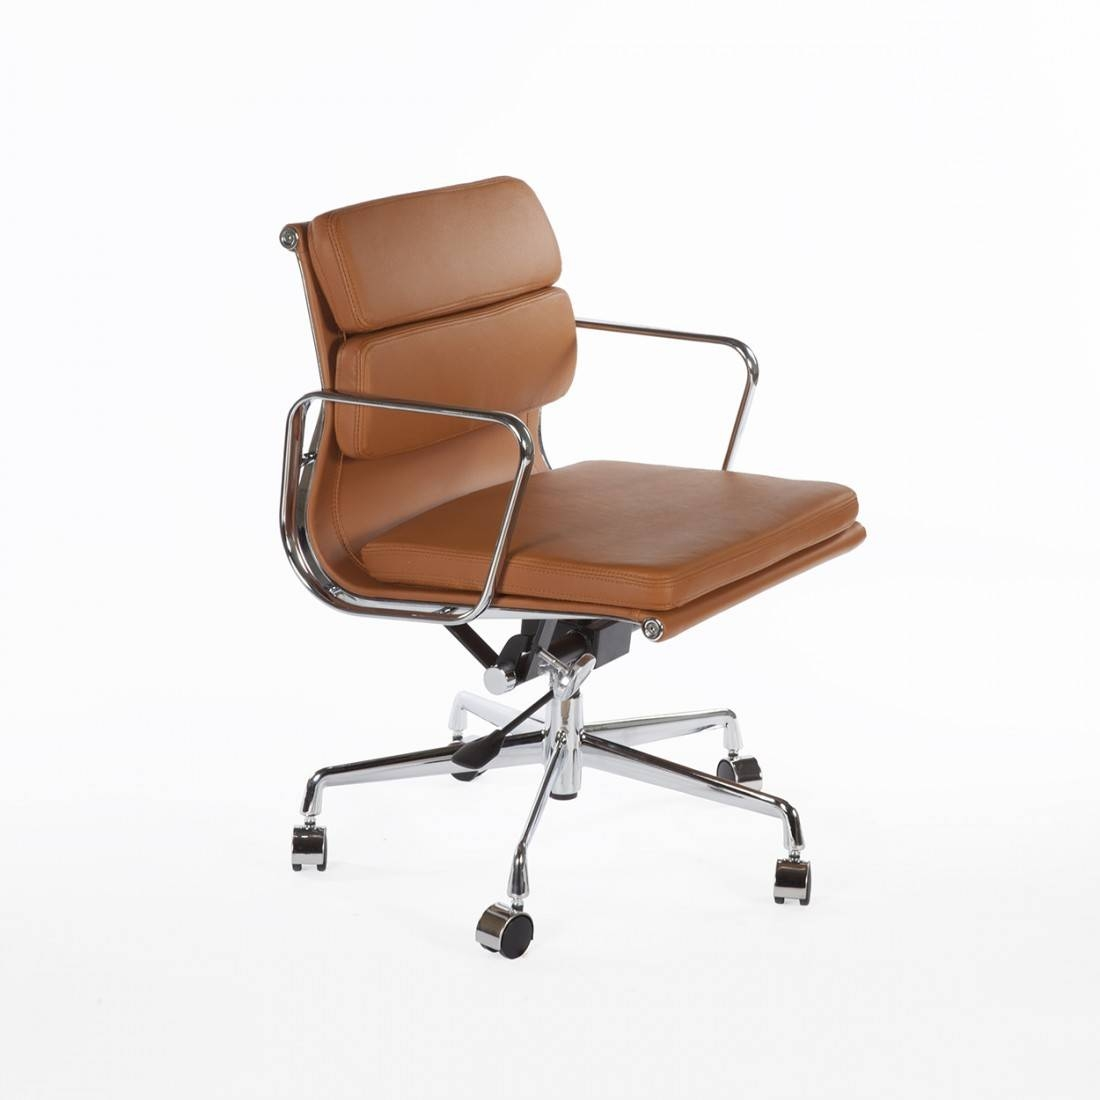 Sofa Modern Leather Office Chairs | Winafrica intended for Sofa Desk Chairs (Image 10 of 15)